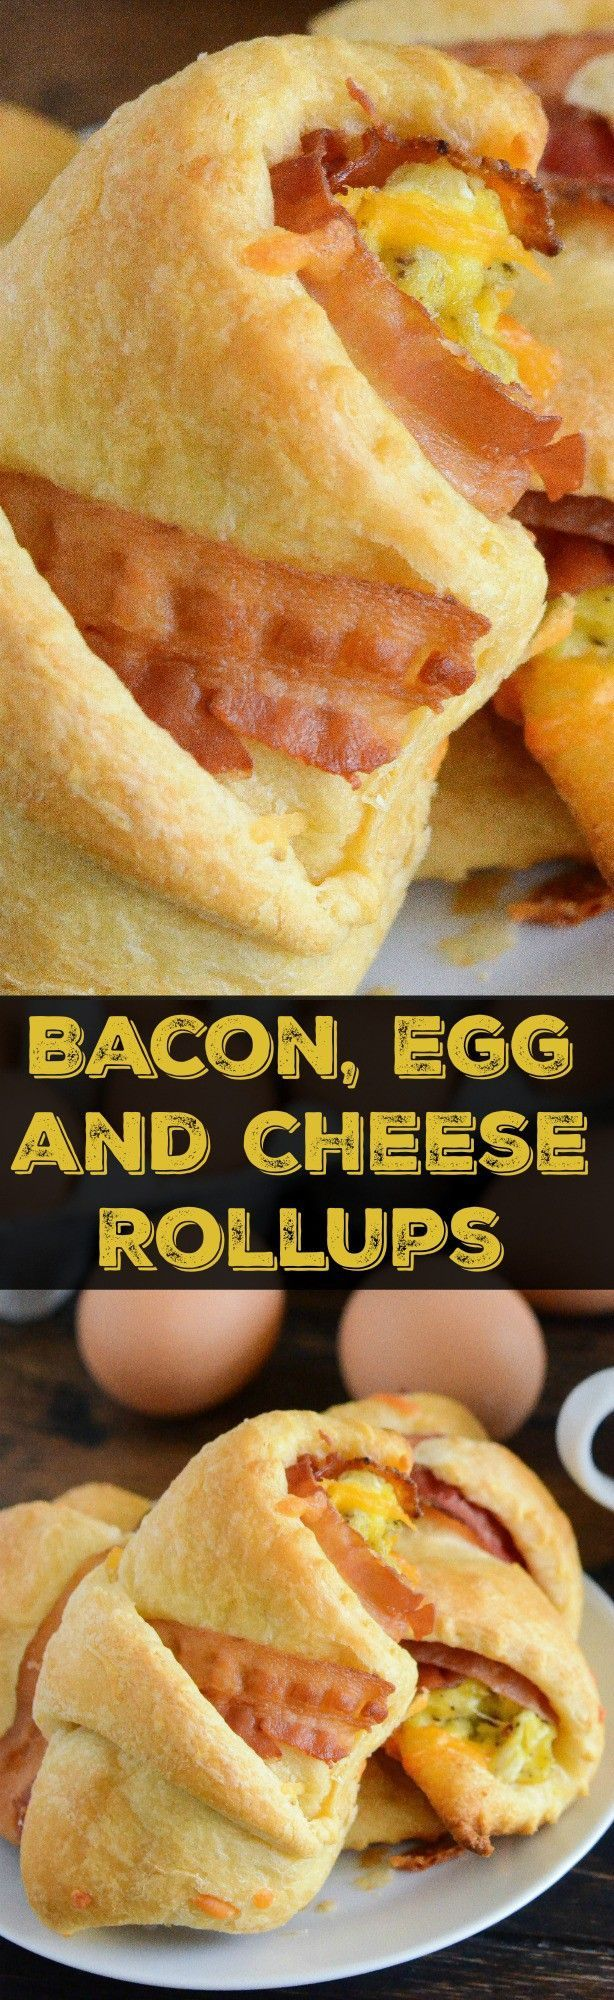 Bacon, Egg & Cheese Rollups: crispy bacon, creamy Handsome Brook Farm Pasture Raised Eggs & sharp cheddar cheese are baked in a buttery crescent to create the best handheld breakfast! #Partner #HelloHandsome #AlwaysOrganic